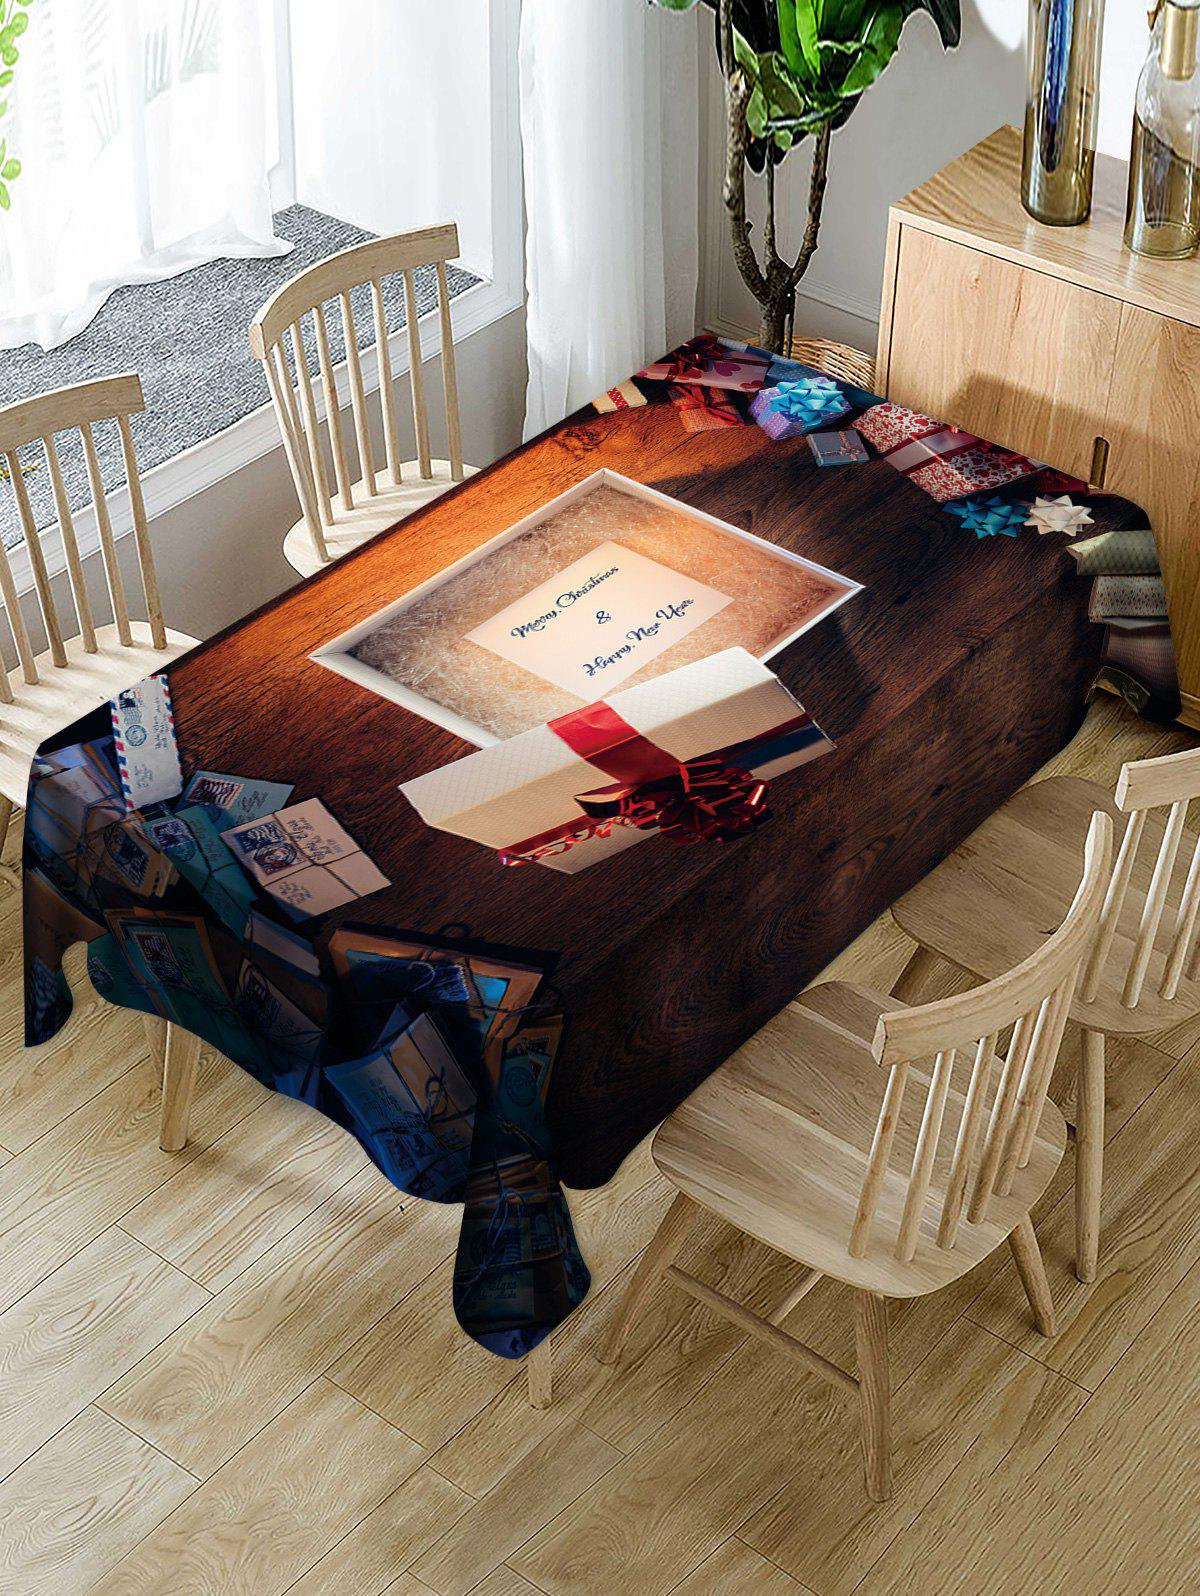 Shops Christmas Gifts and Letters Print Table Cloth